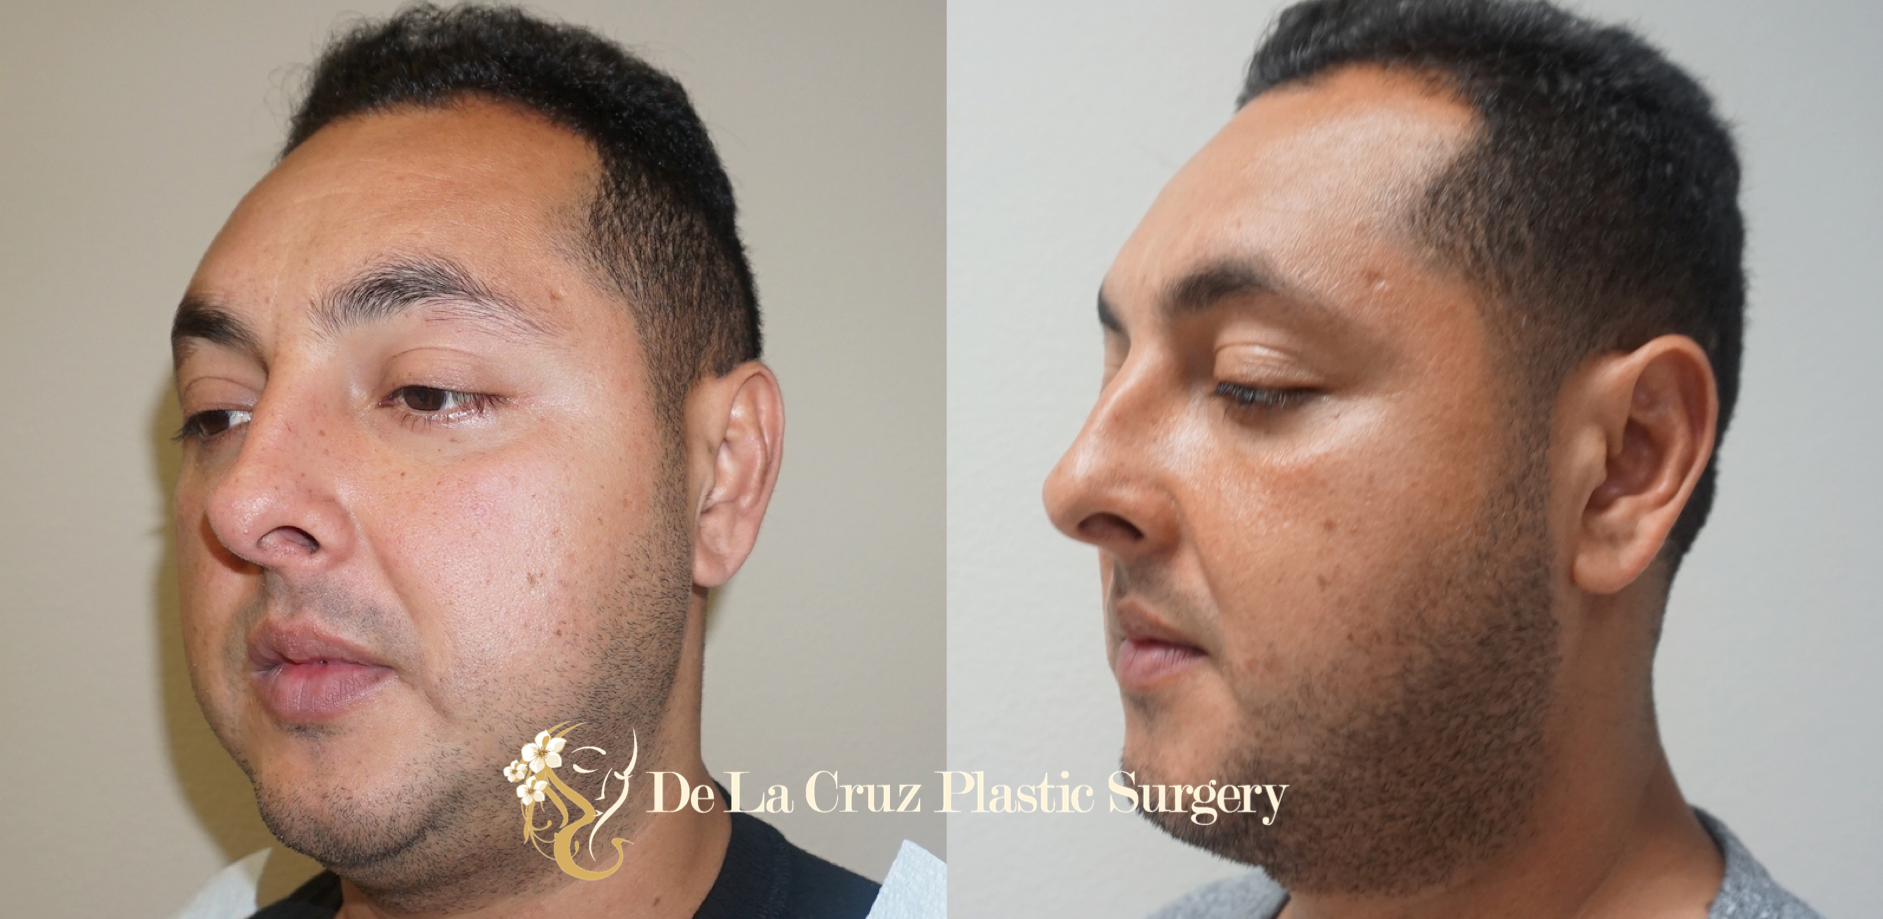 Buccal Fat Removal Before & After Photos (3 months after surgery) performed by Dr. Emmanuel De La Cruz.